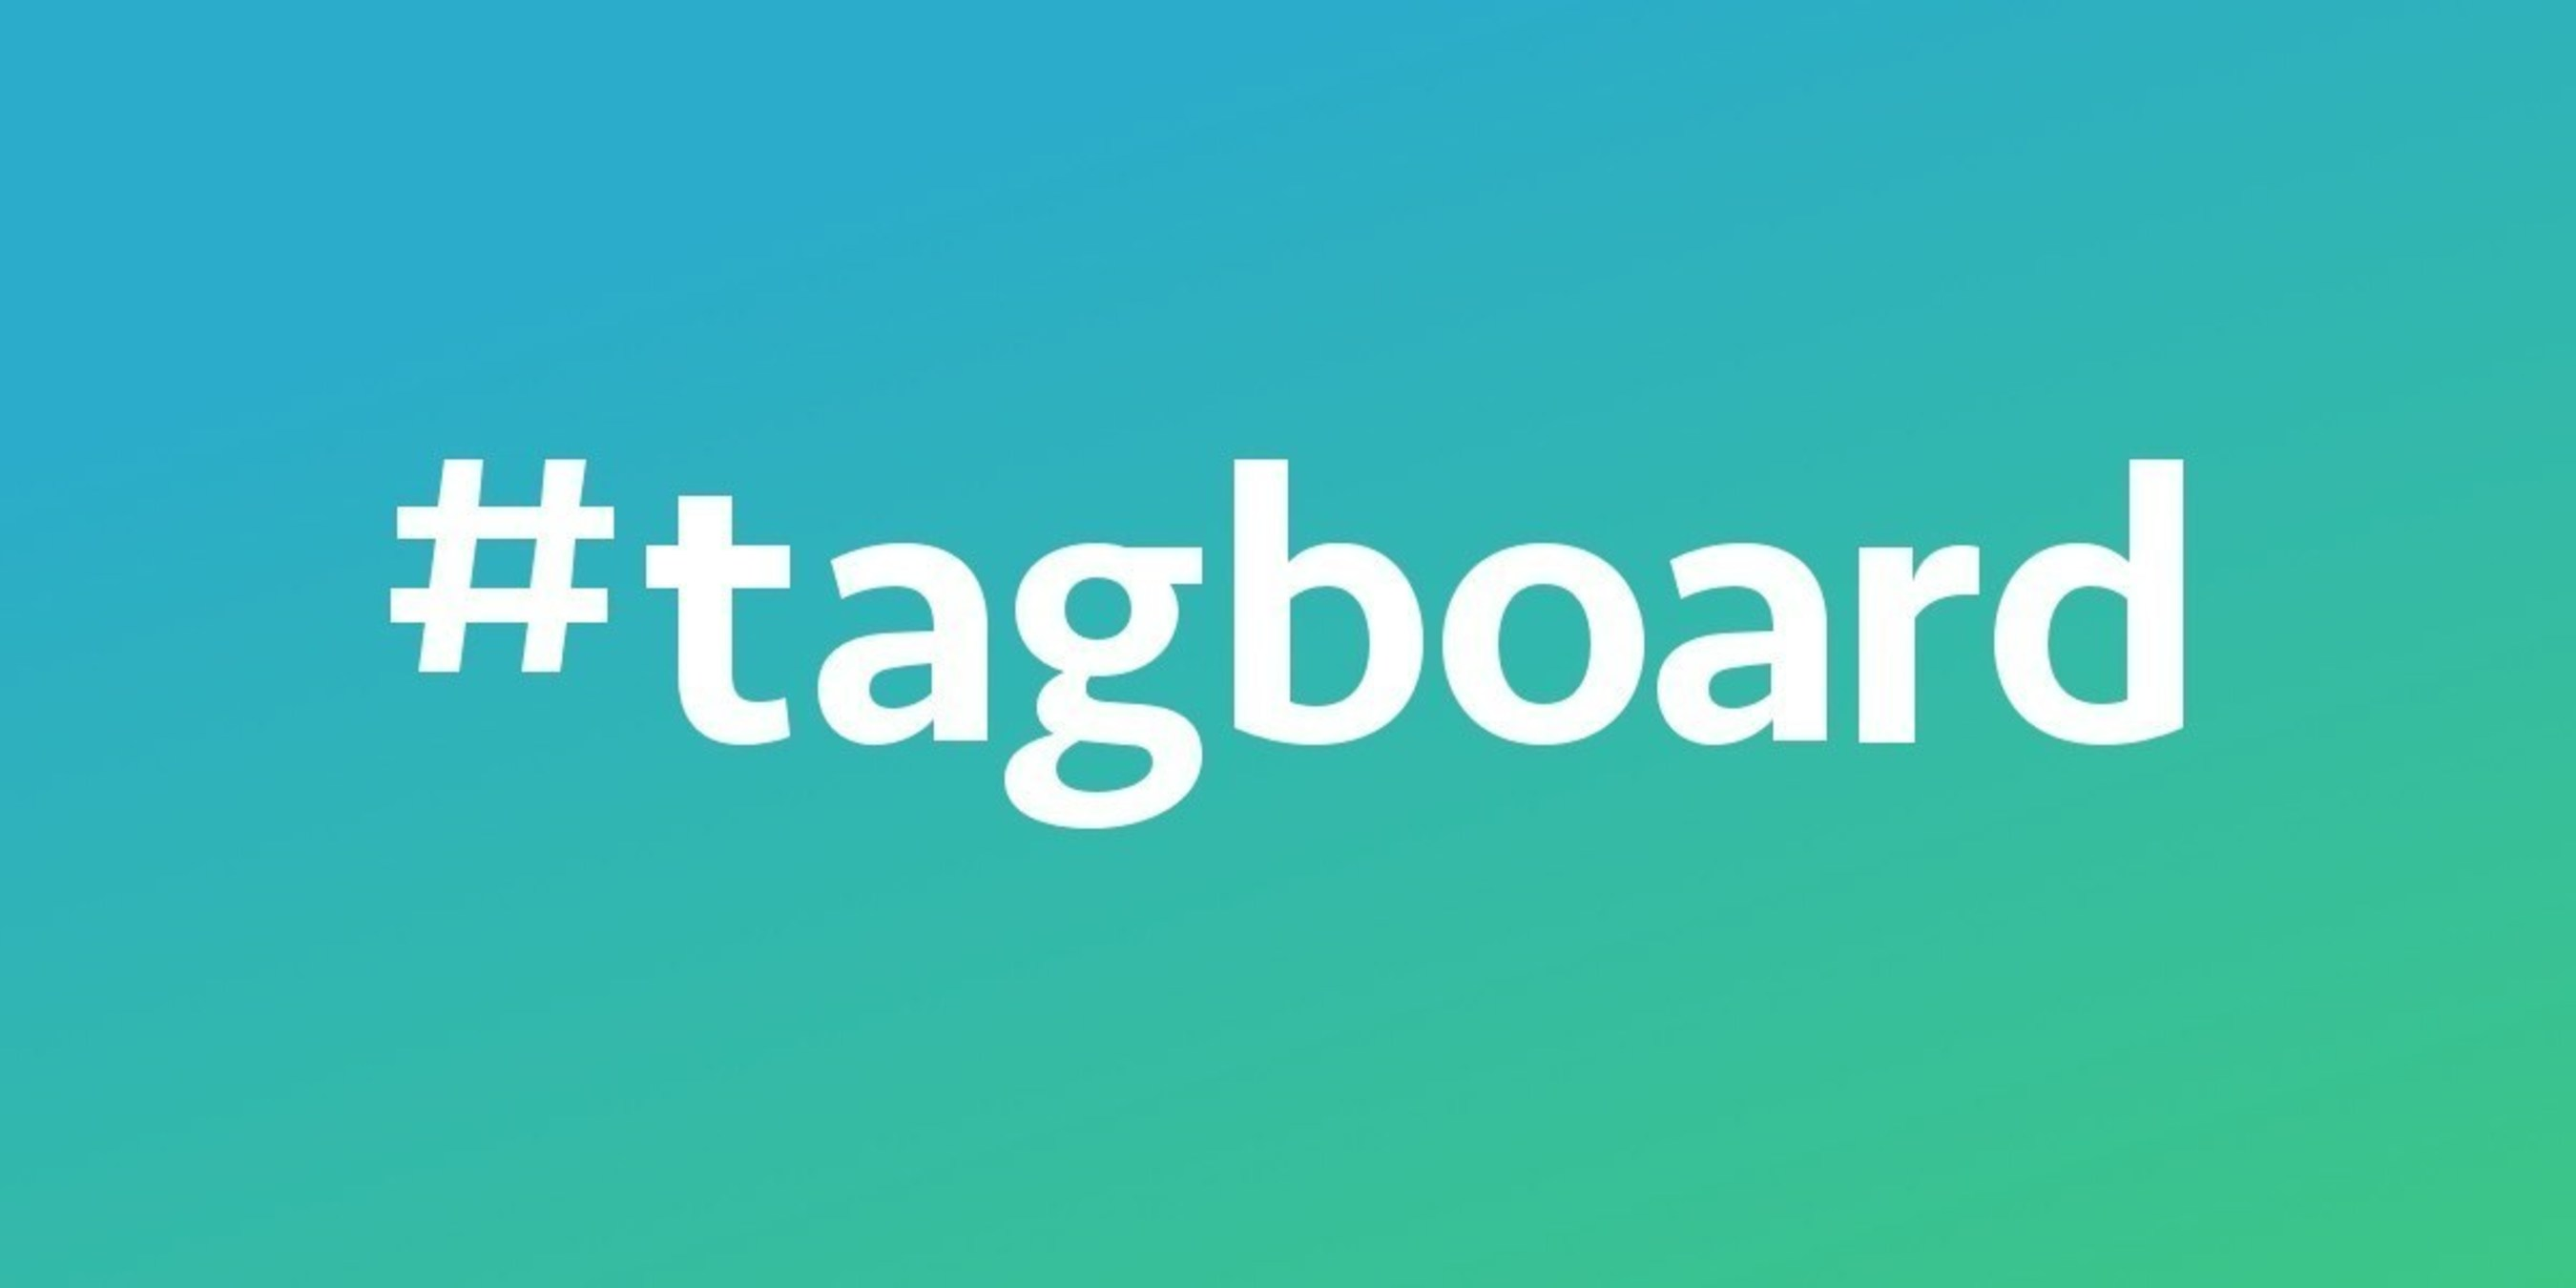 Tagboard to Acquire Capture